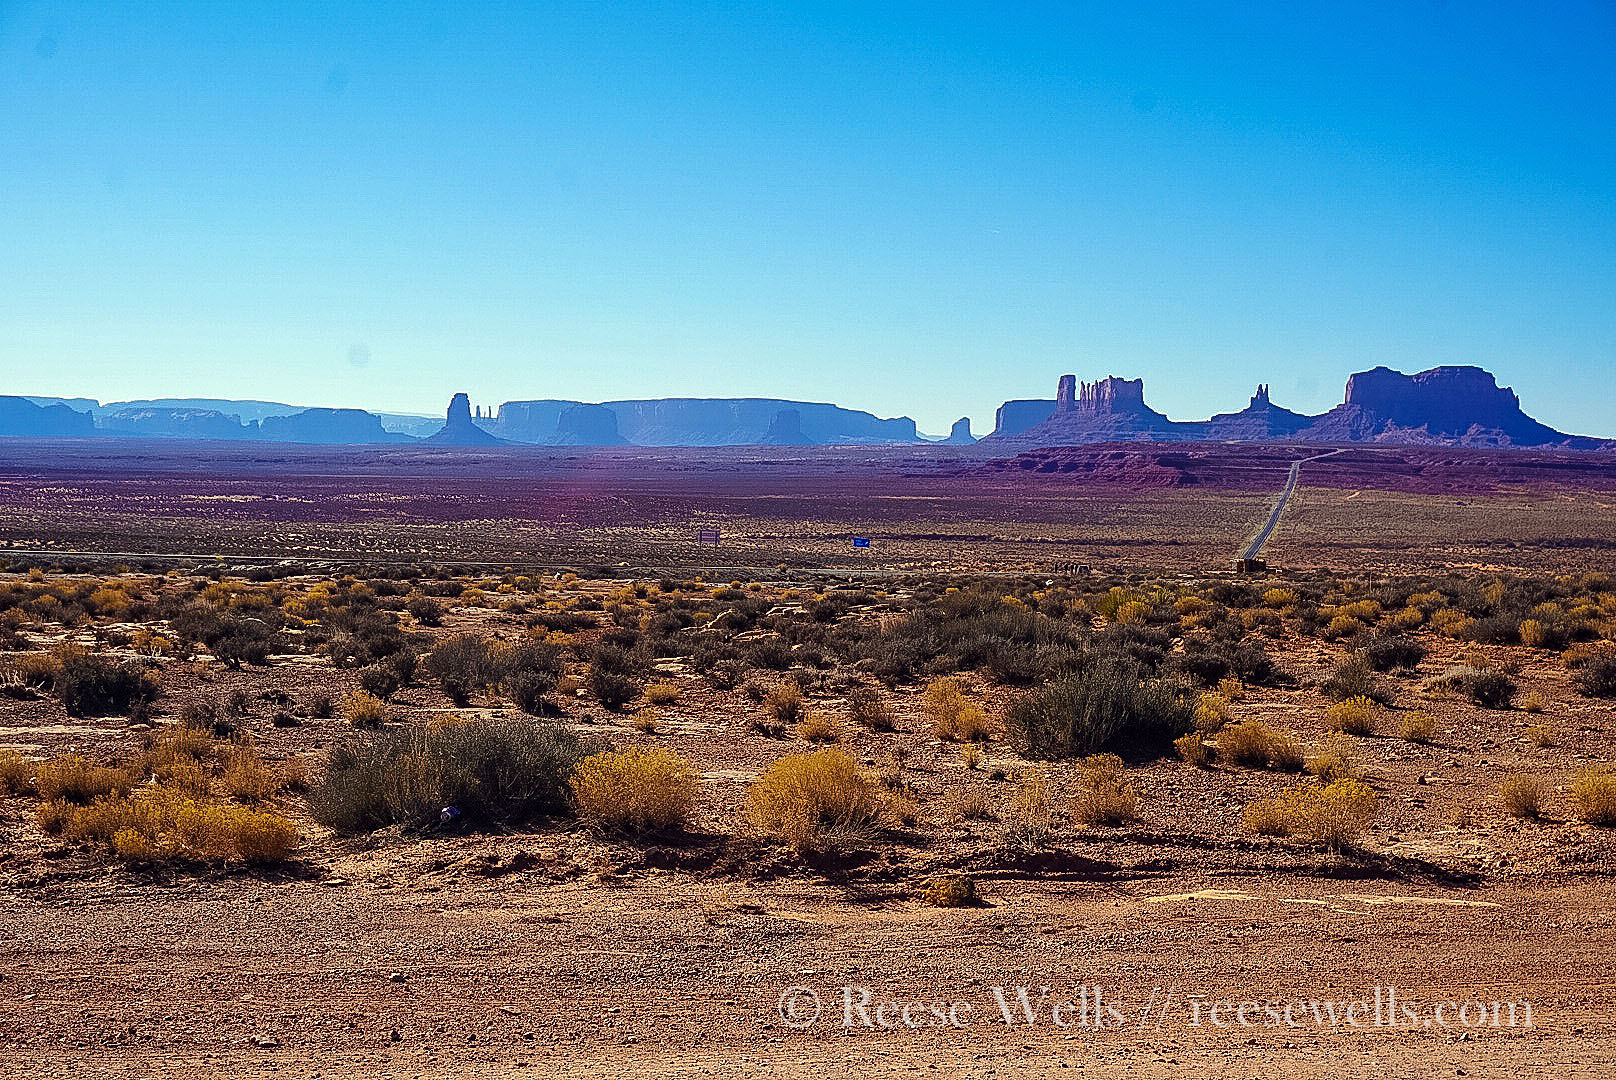 View en route to Monument Valley from Valley of the Gods.